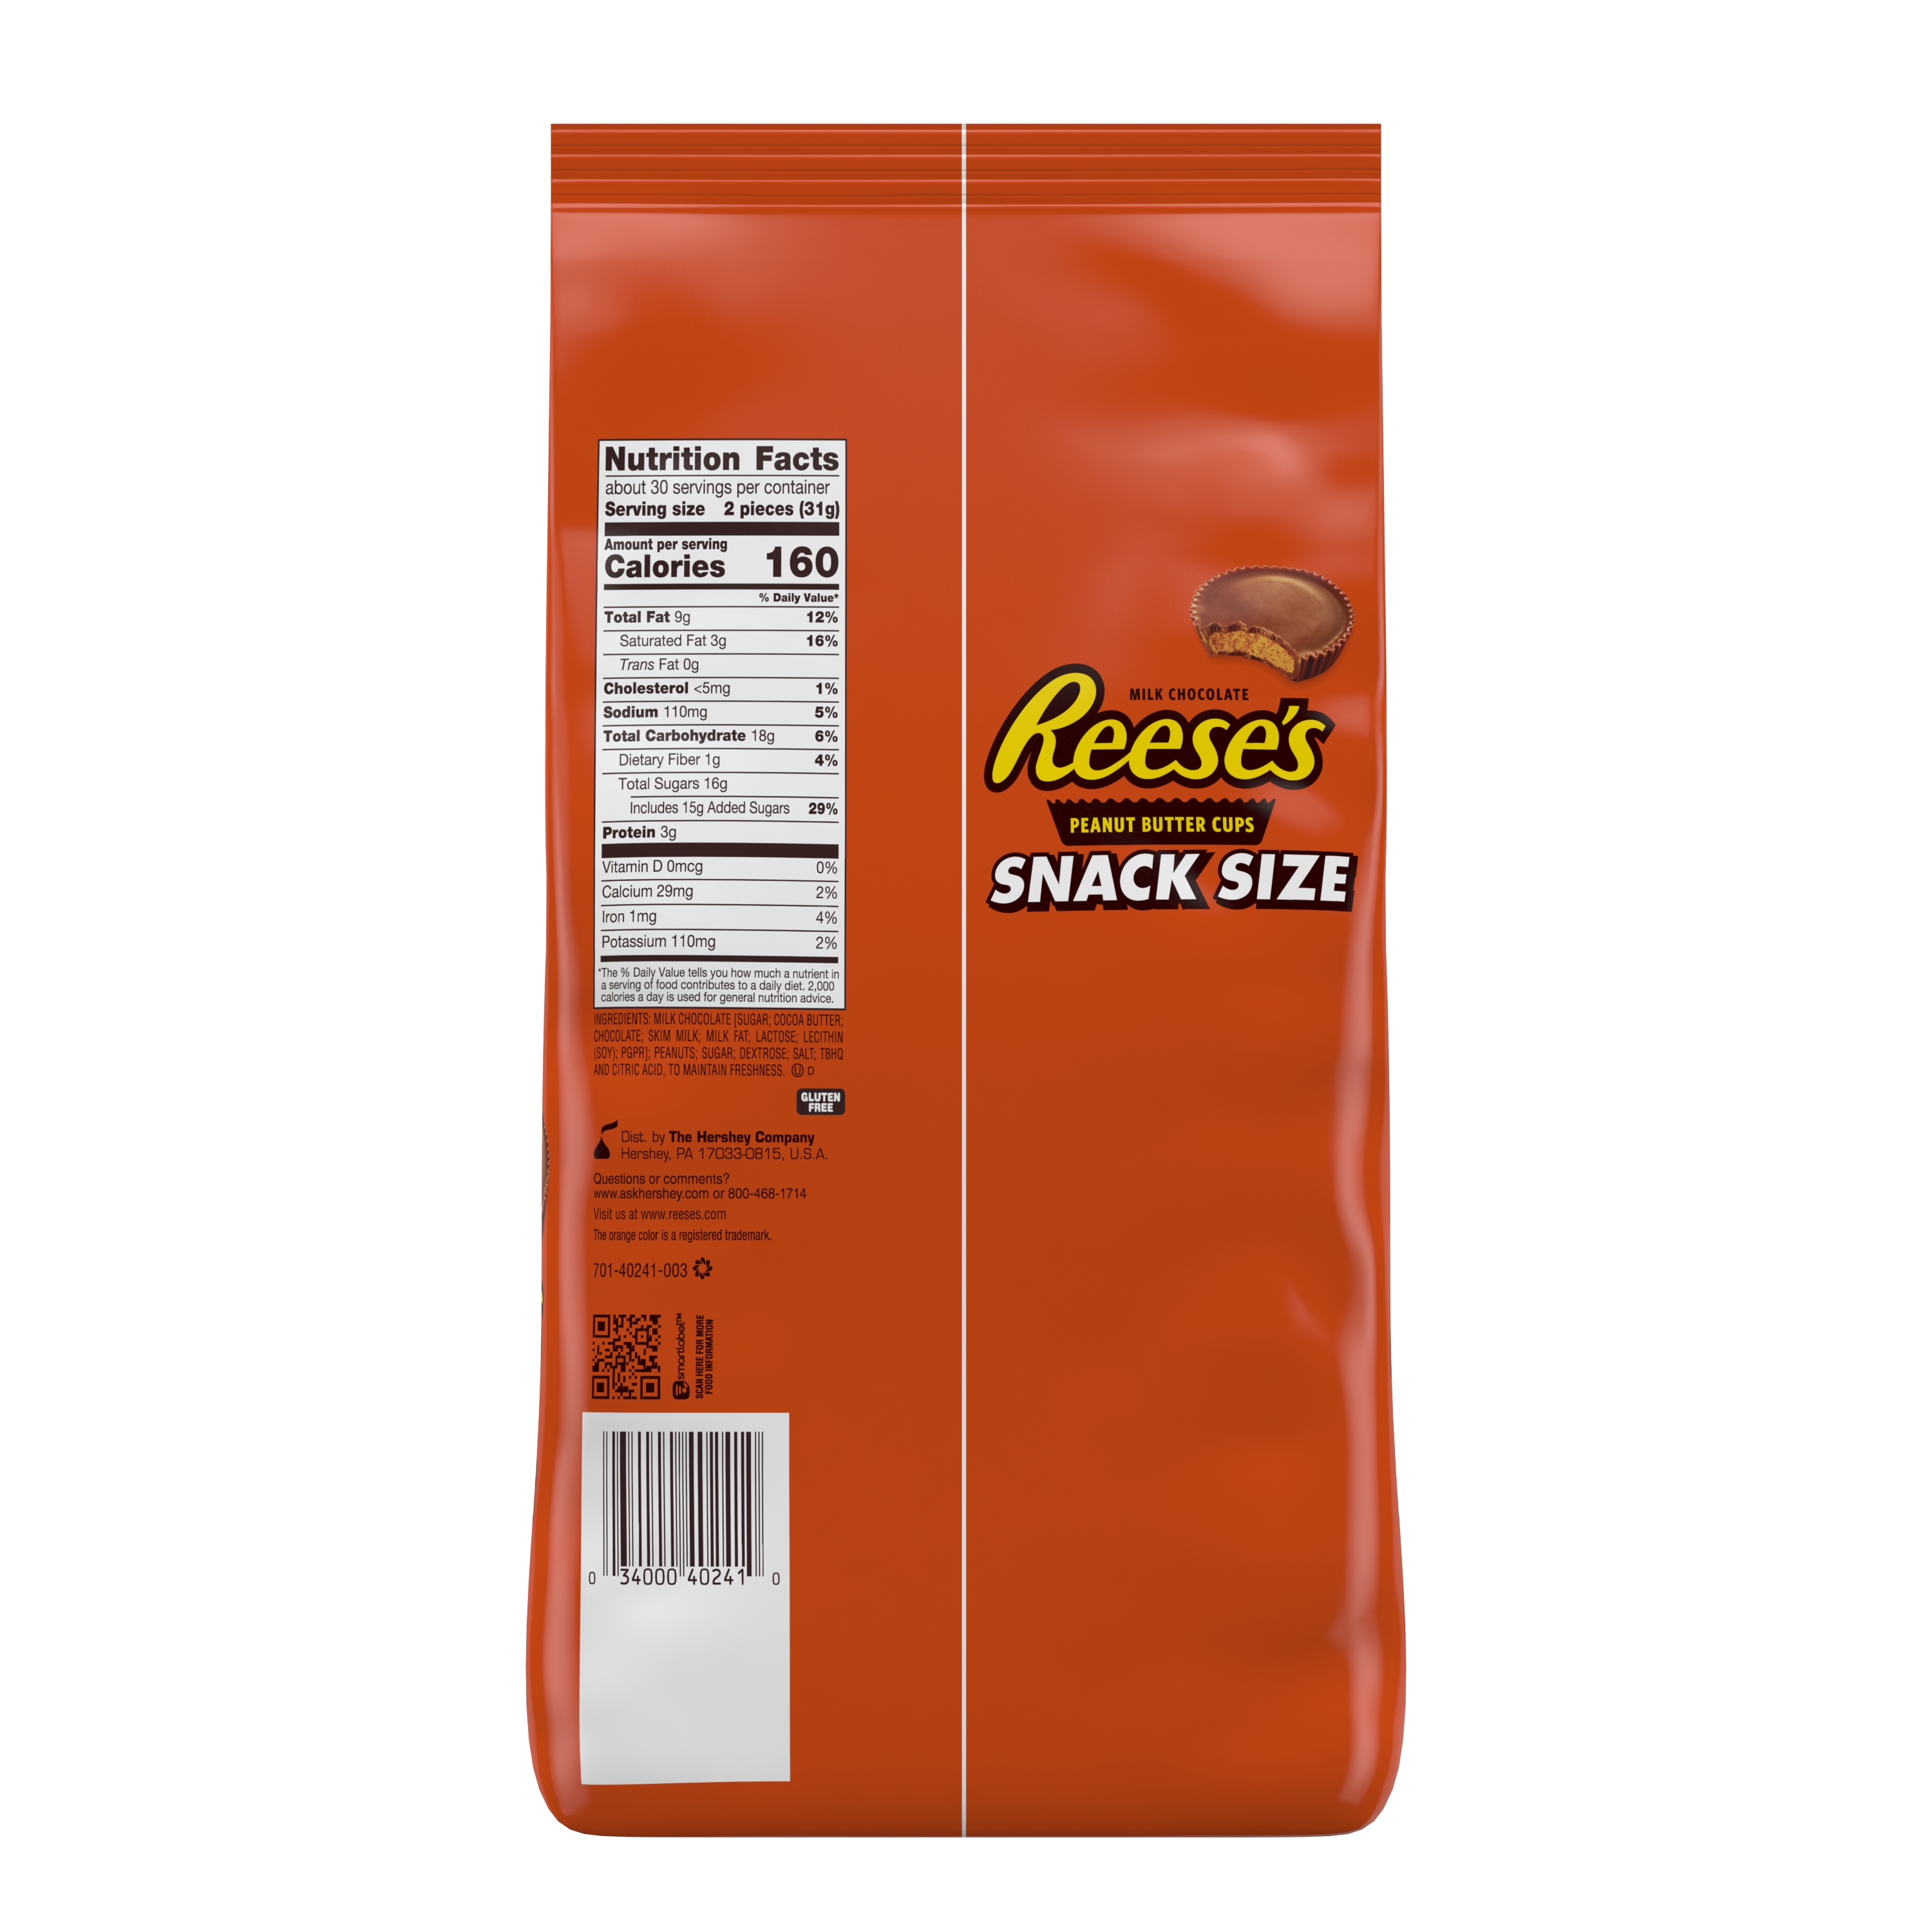 REESE'S Milk Chocolate Snack Size Peanut Butter Cups, 33 oz bag, 60 pieces - Back of Package